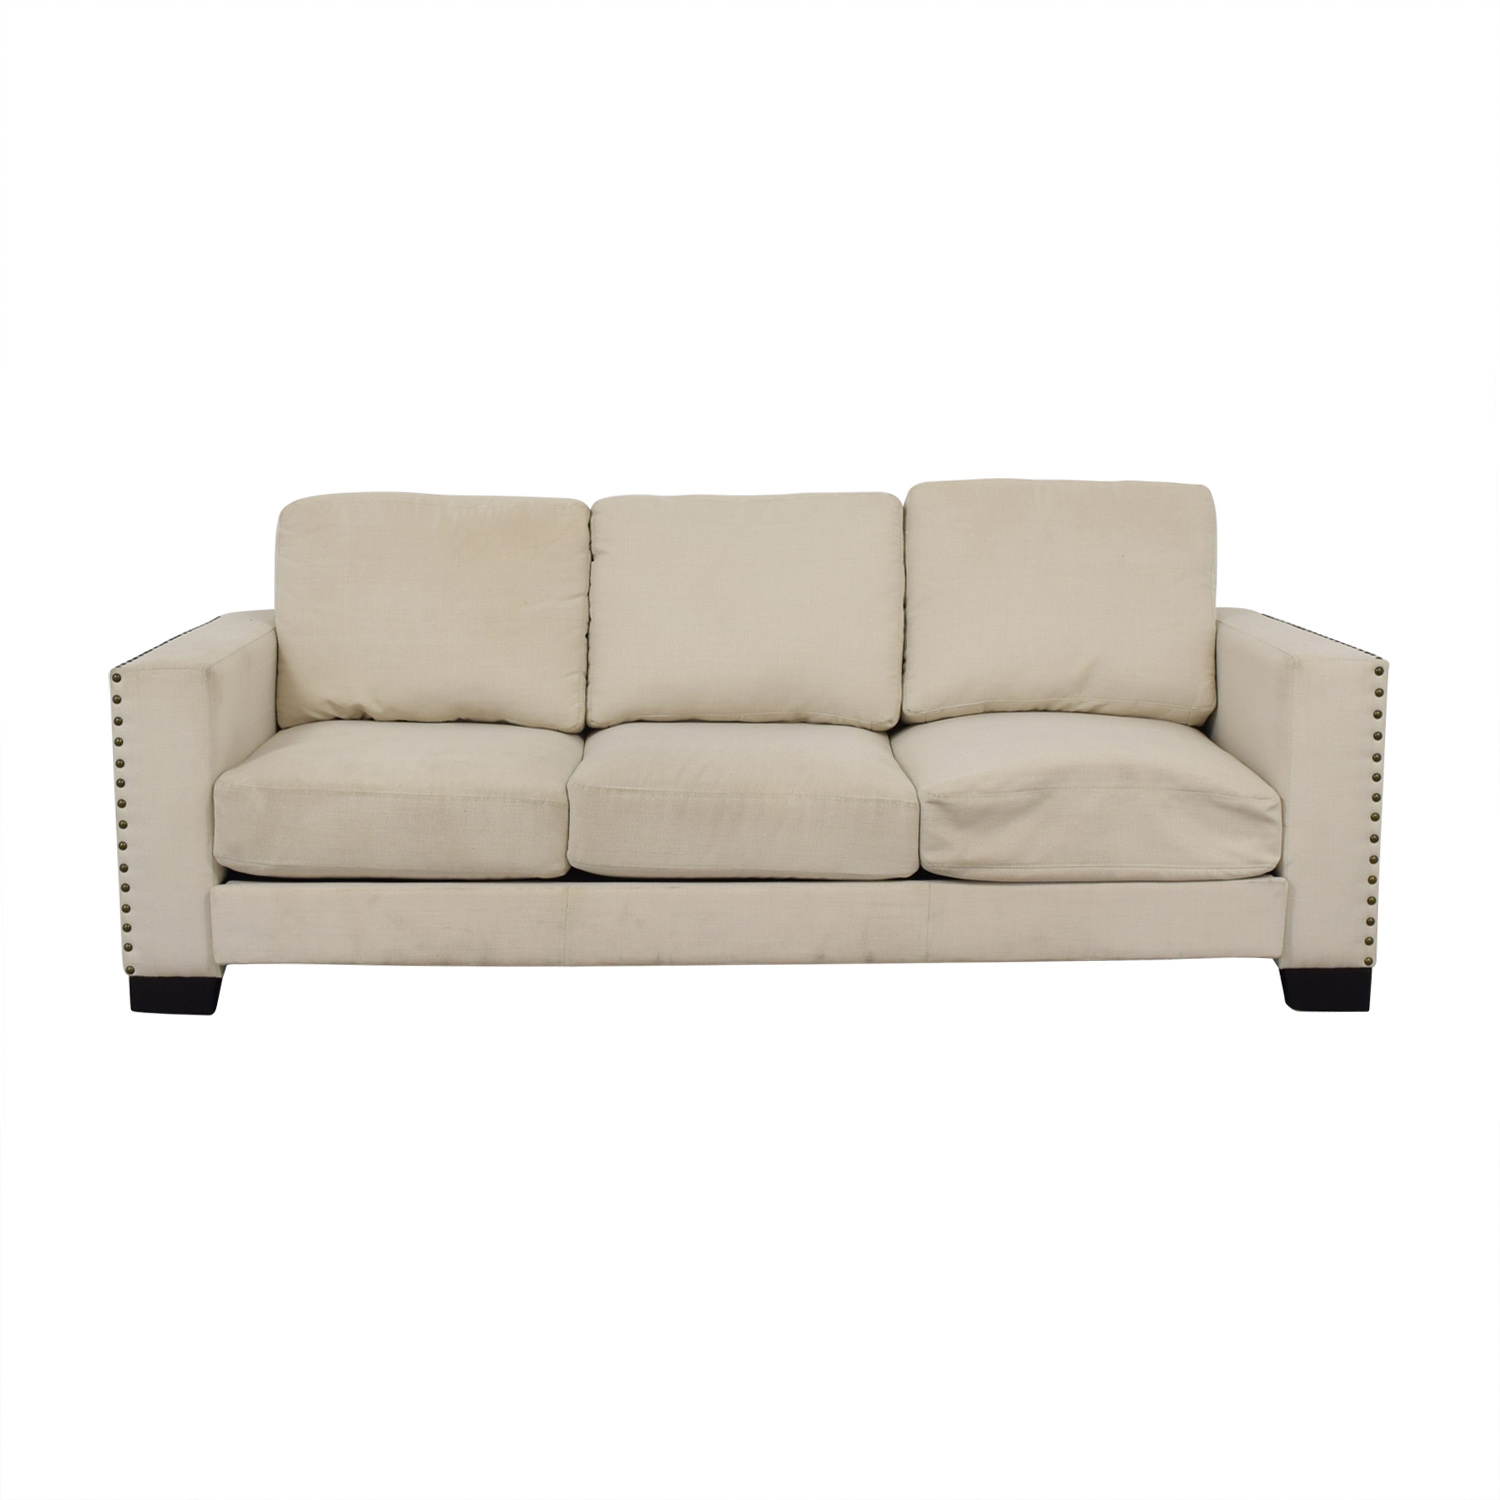 buy Kingstown Home Navarre Collection Kingstown Home Classic Sofas